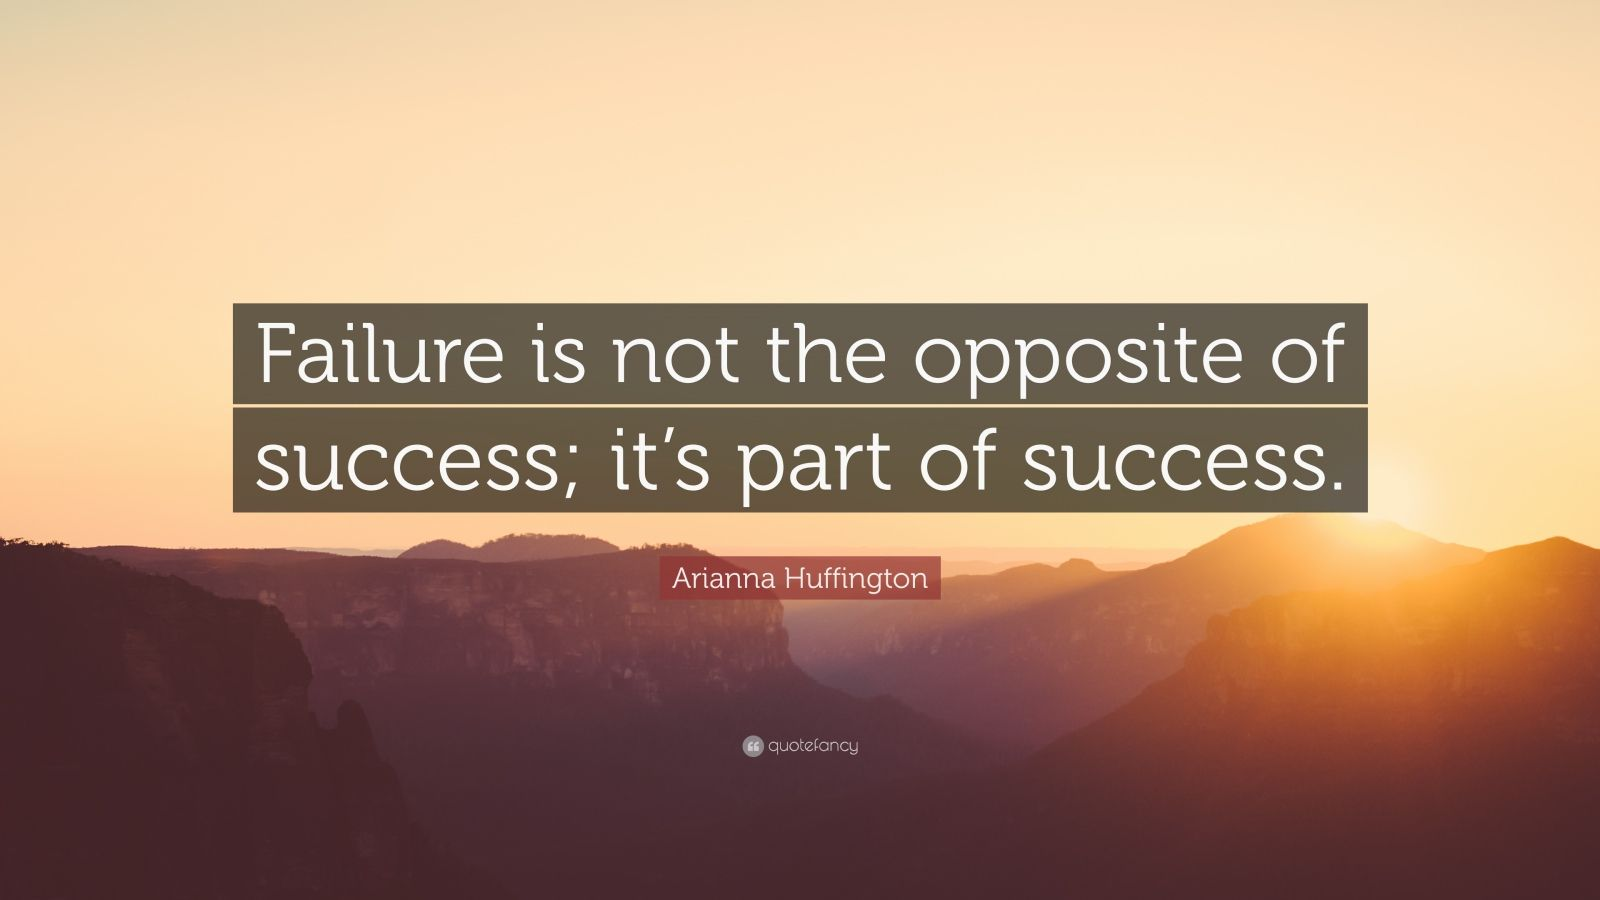 Inspirational Quotes Wallpaper In Hindi Arianna Huffington Quote Failure Is Not The Opposite Of